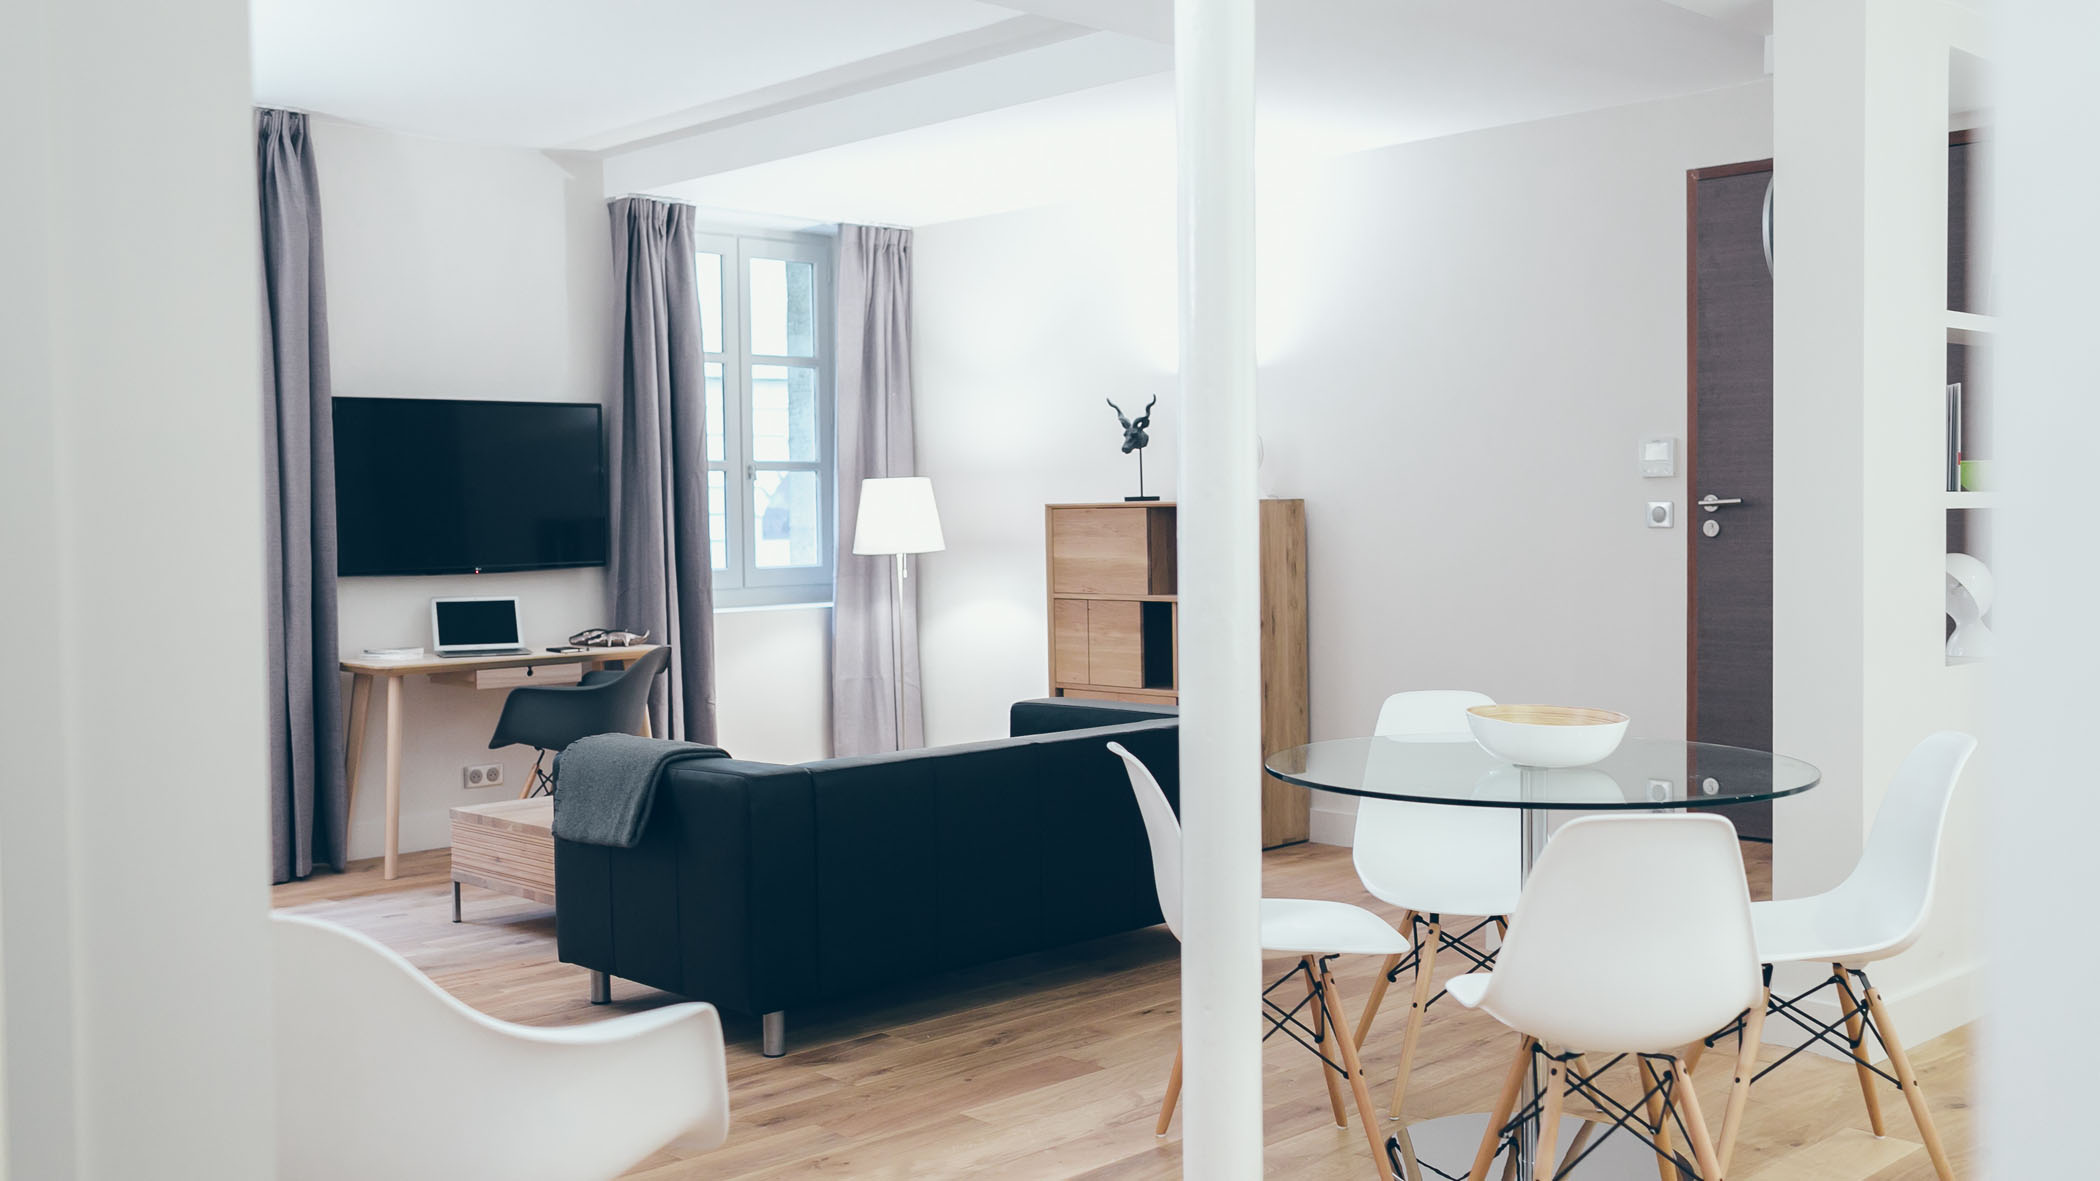 Location appartements luxe Bordeaux centre ville